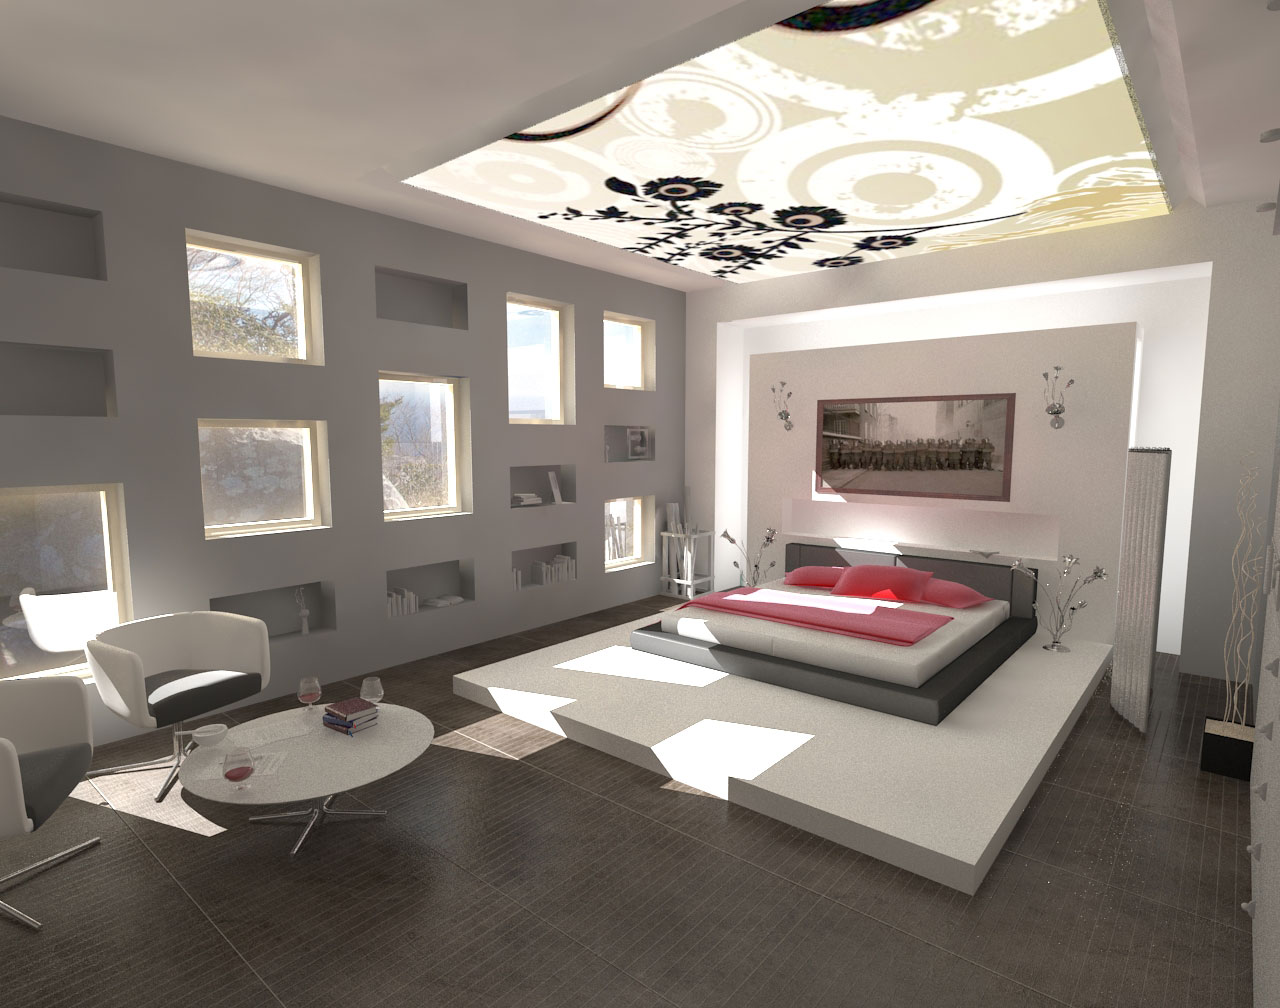 Interior design ideas fantastic modern bedroom paints Cool bedroom ideas